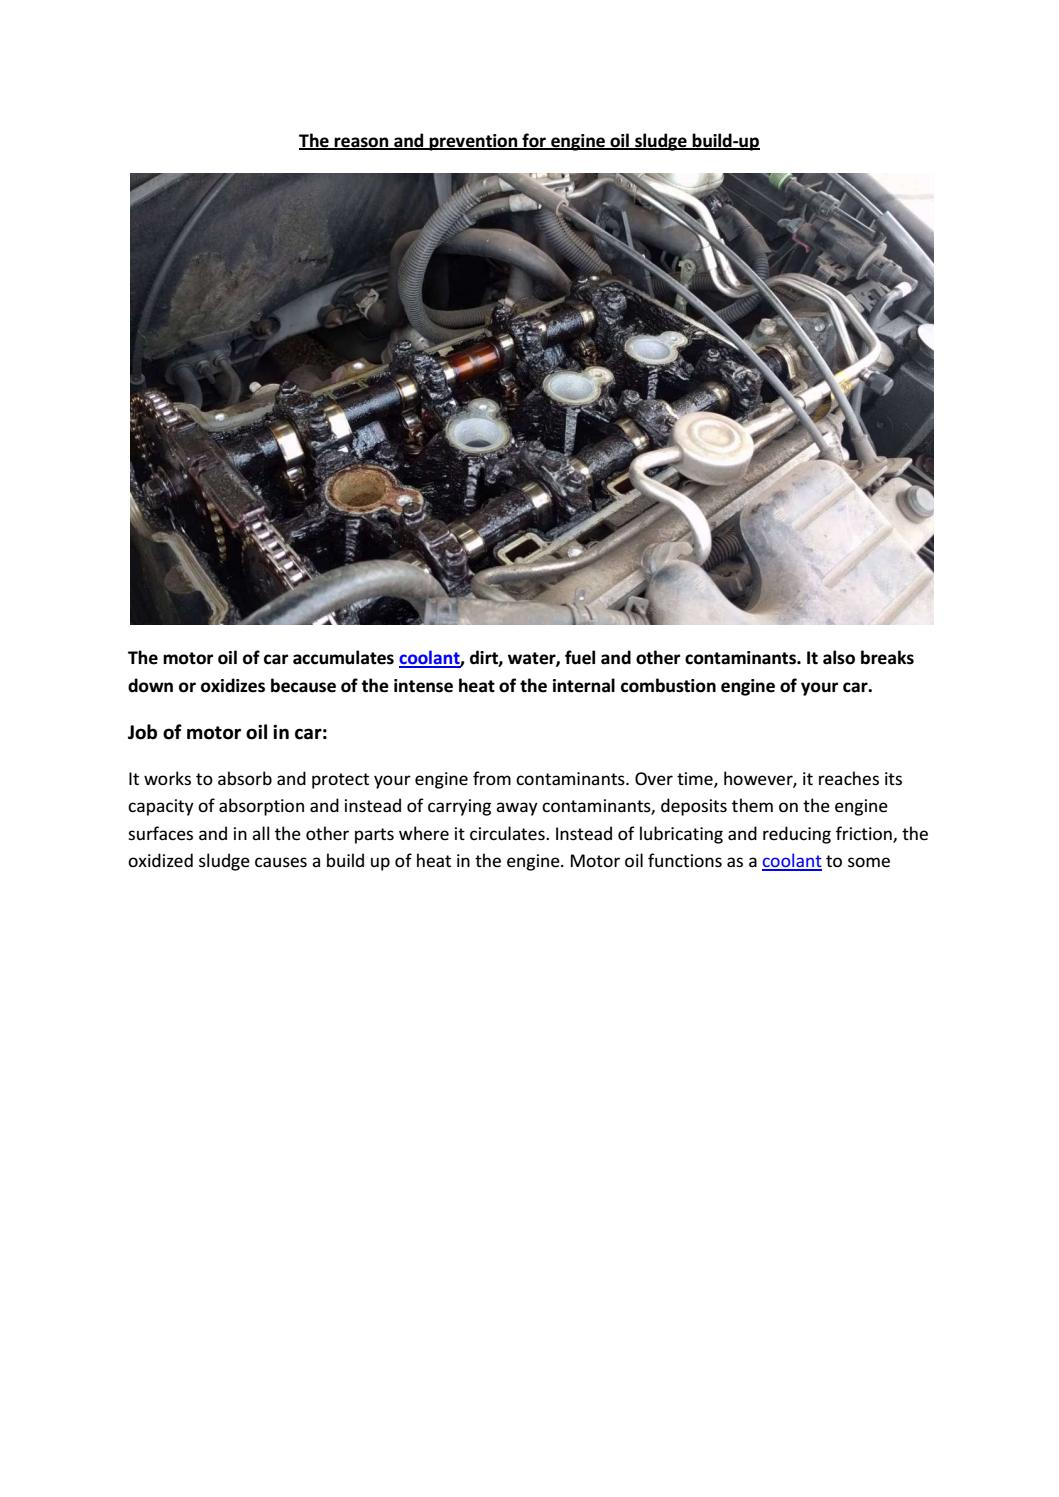 Partsavatar Car Parts, Canada - The reason and prevention for engine ...